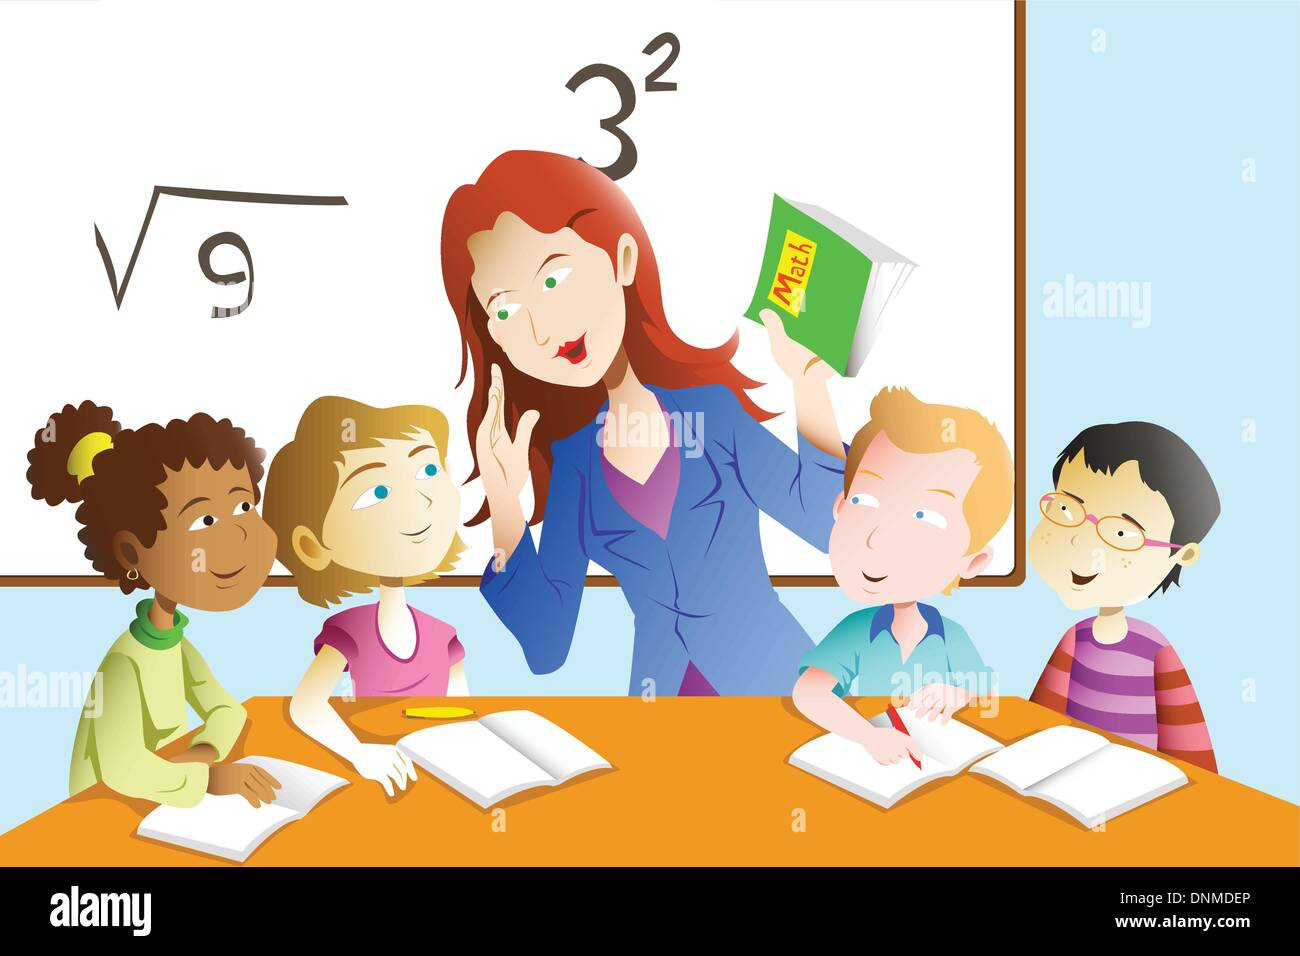 A vector illustration of kids studying math in classroom with teacher - Stock Image